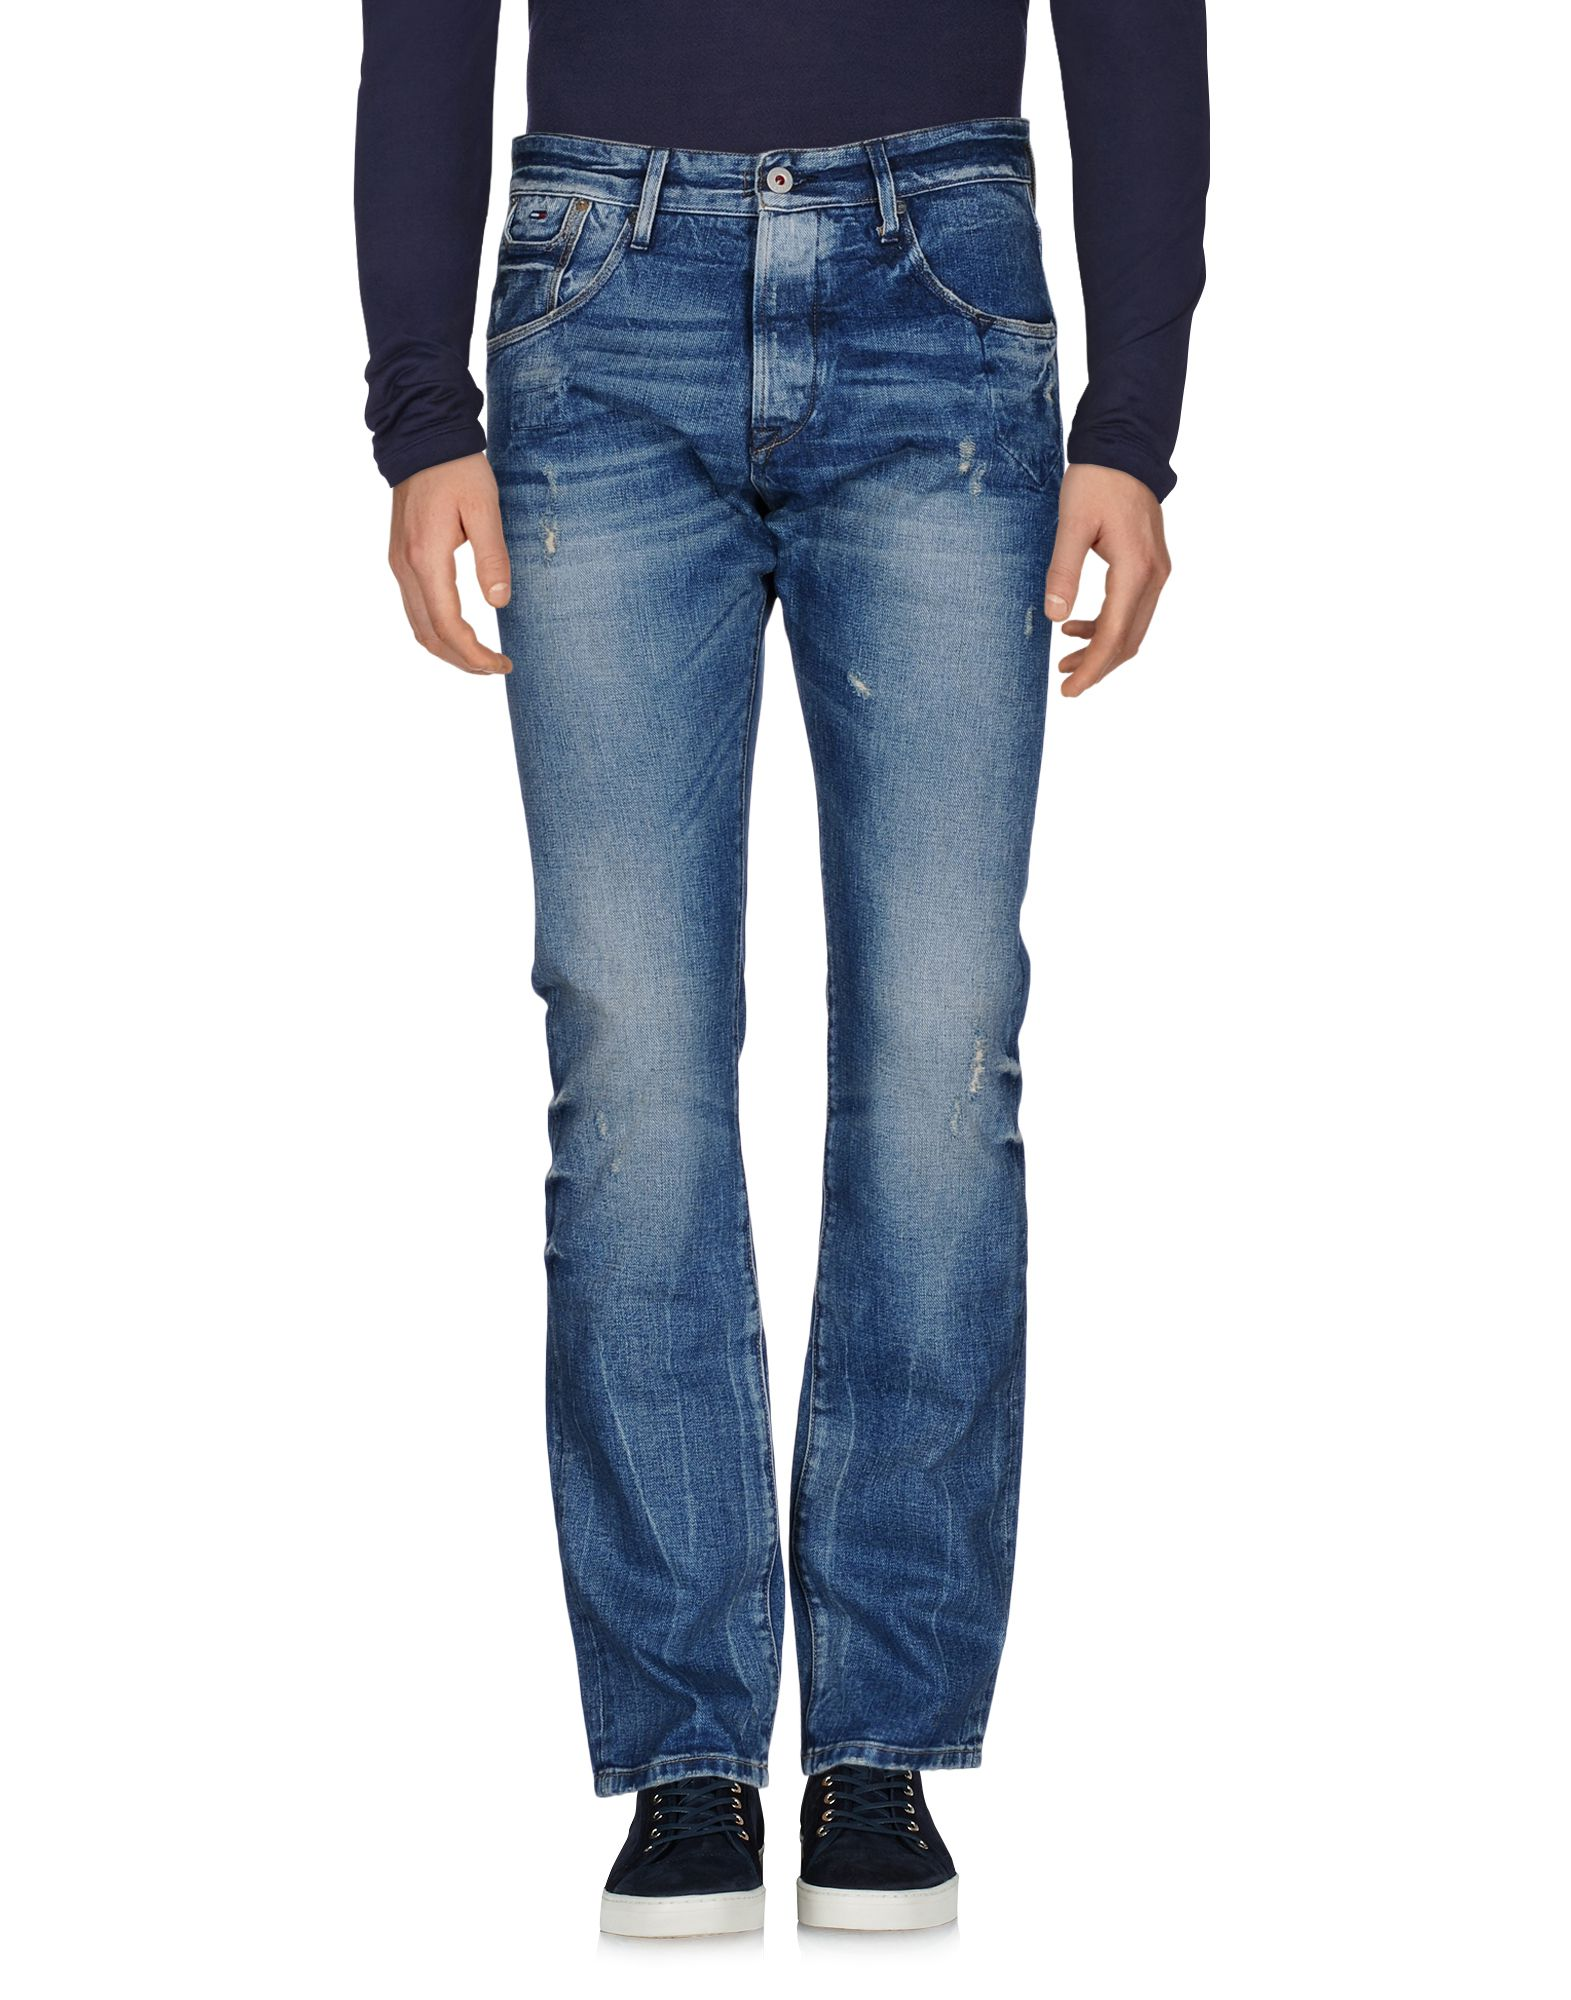 Tommy Hilfiger Denim Jeans